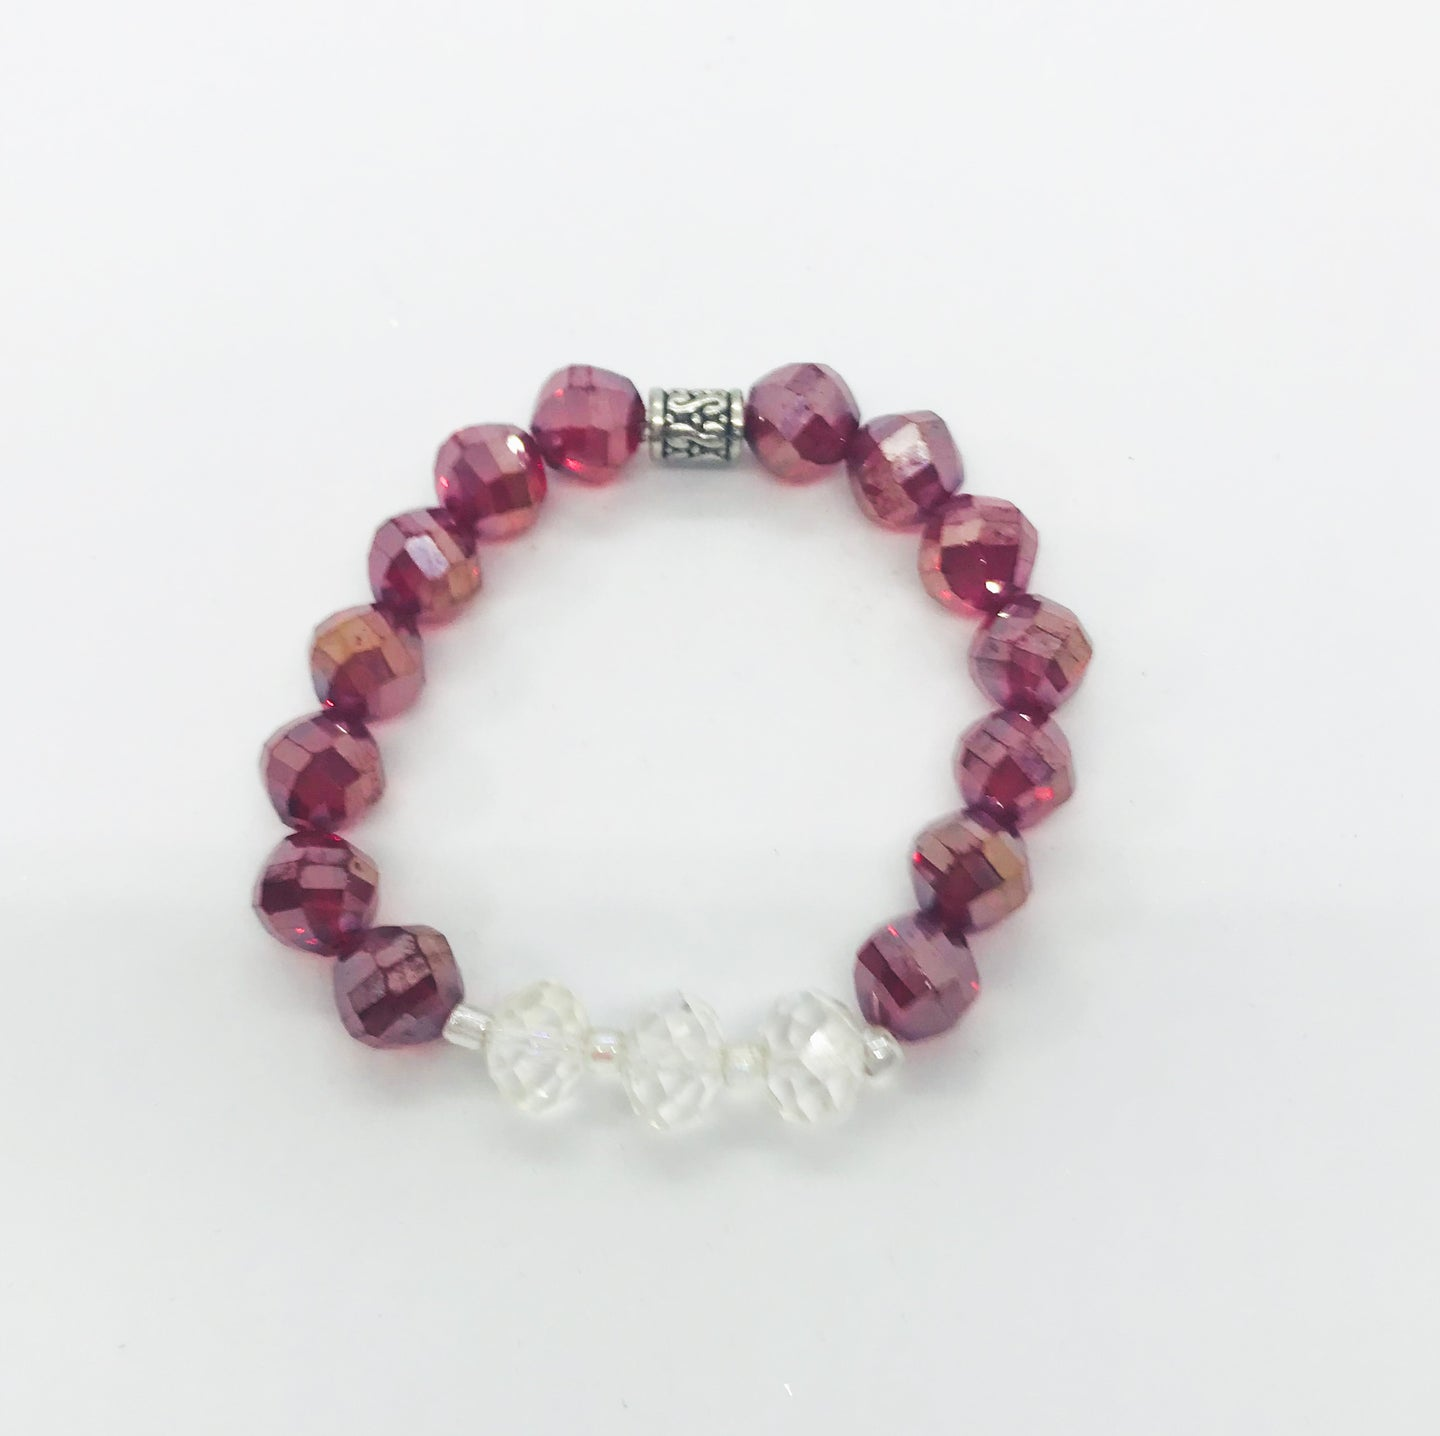 Glass Bead Stretchy Bracelet - B754